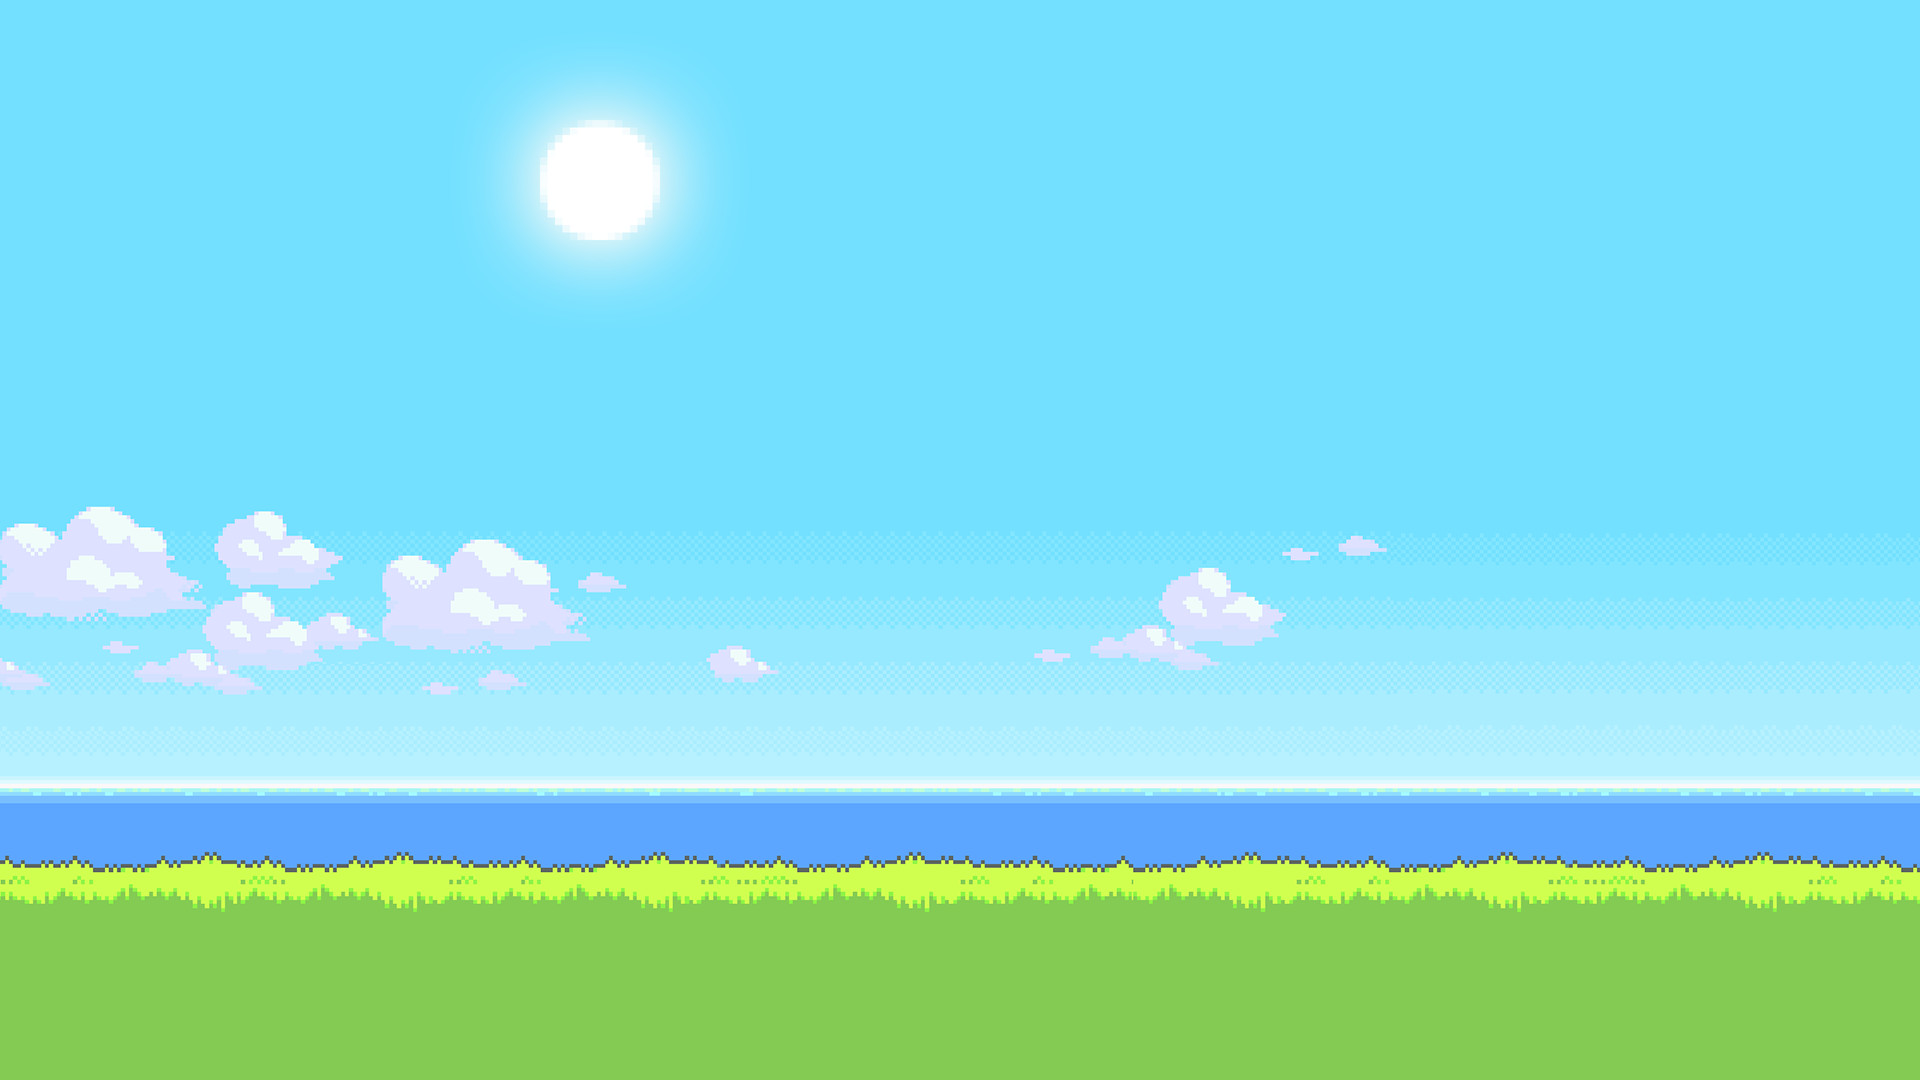 UPDATE: New version of the '8Bit Day' Wallpaper Set. Pixel wallpaper  changes based on time of day!